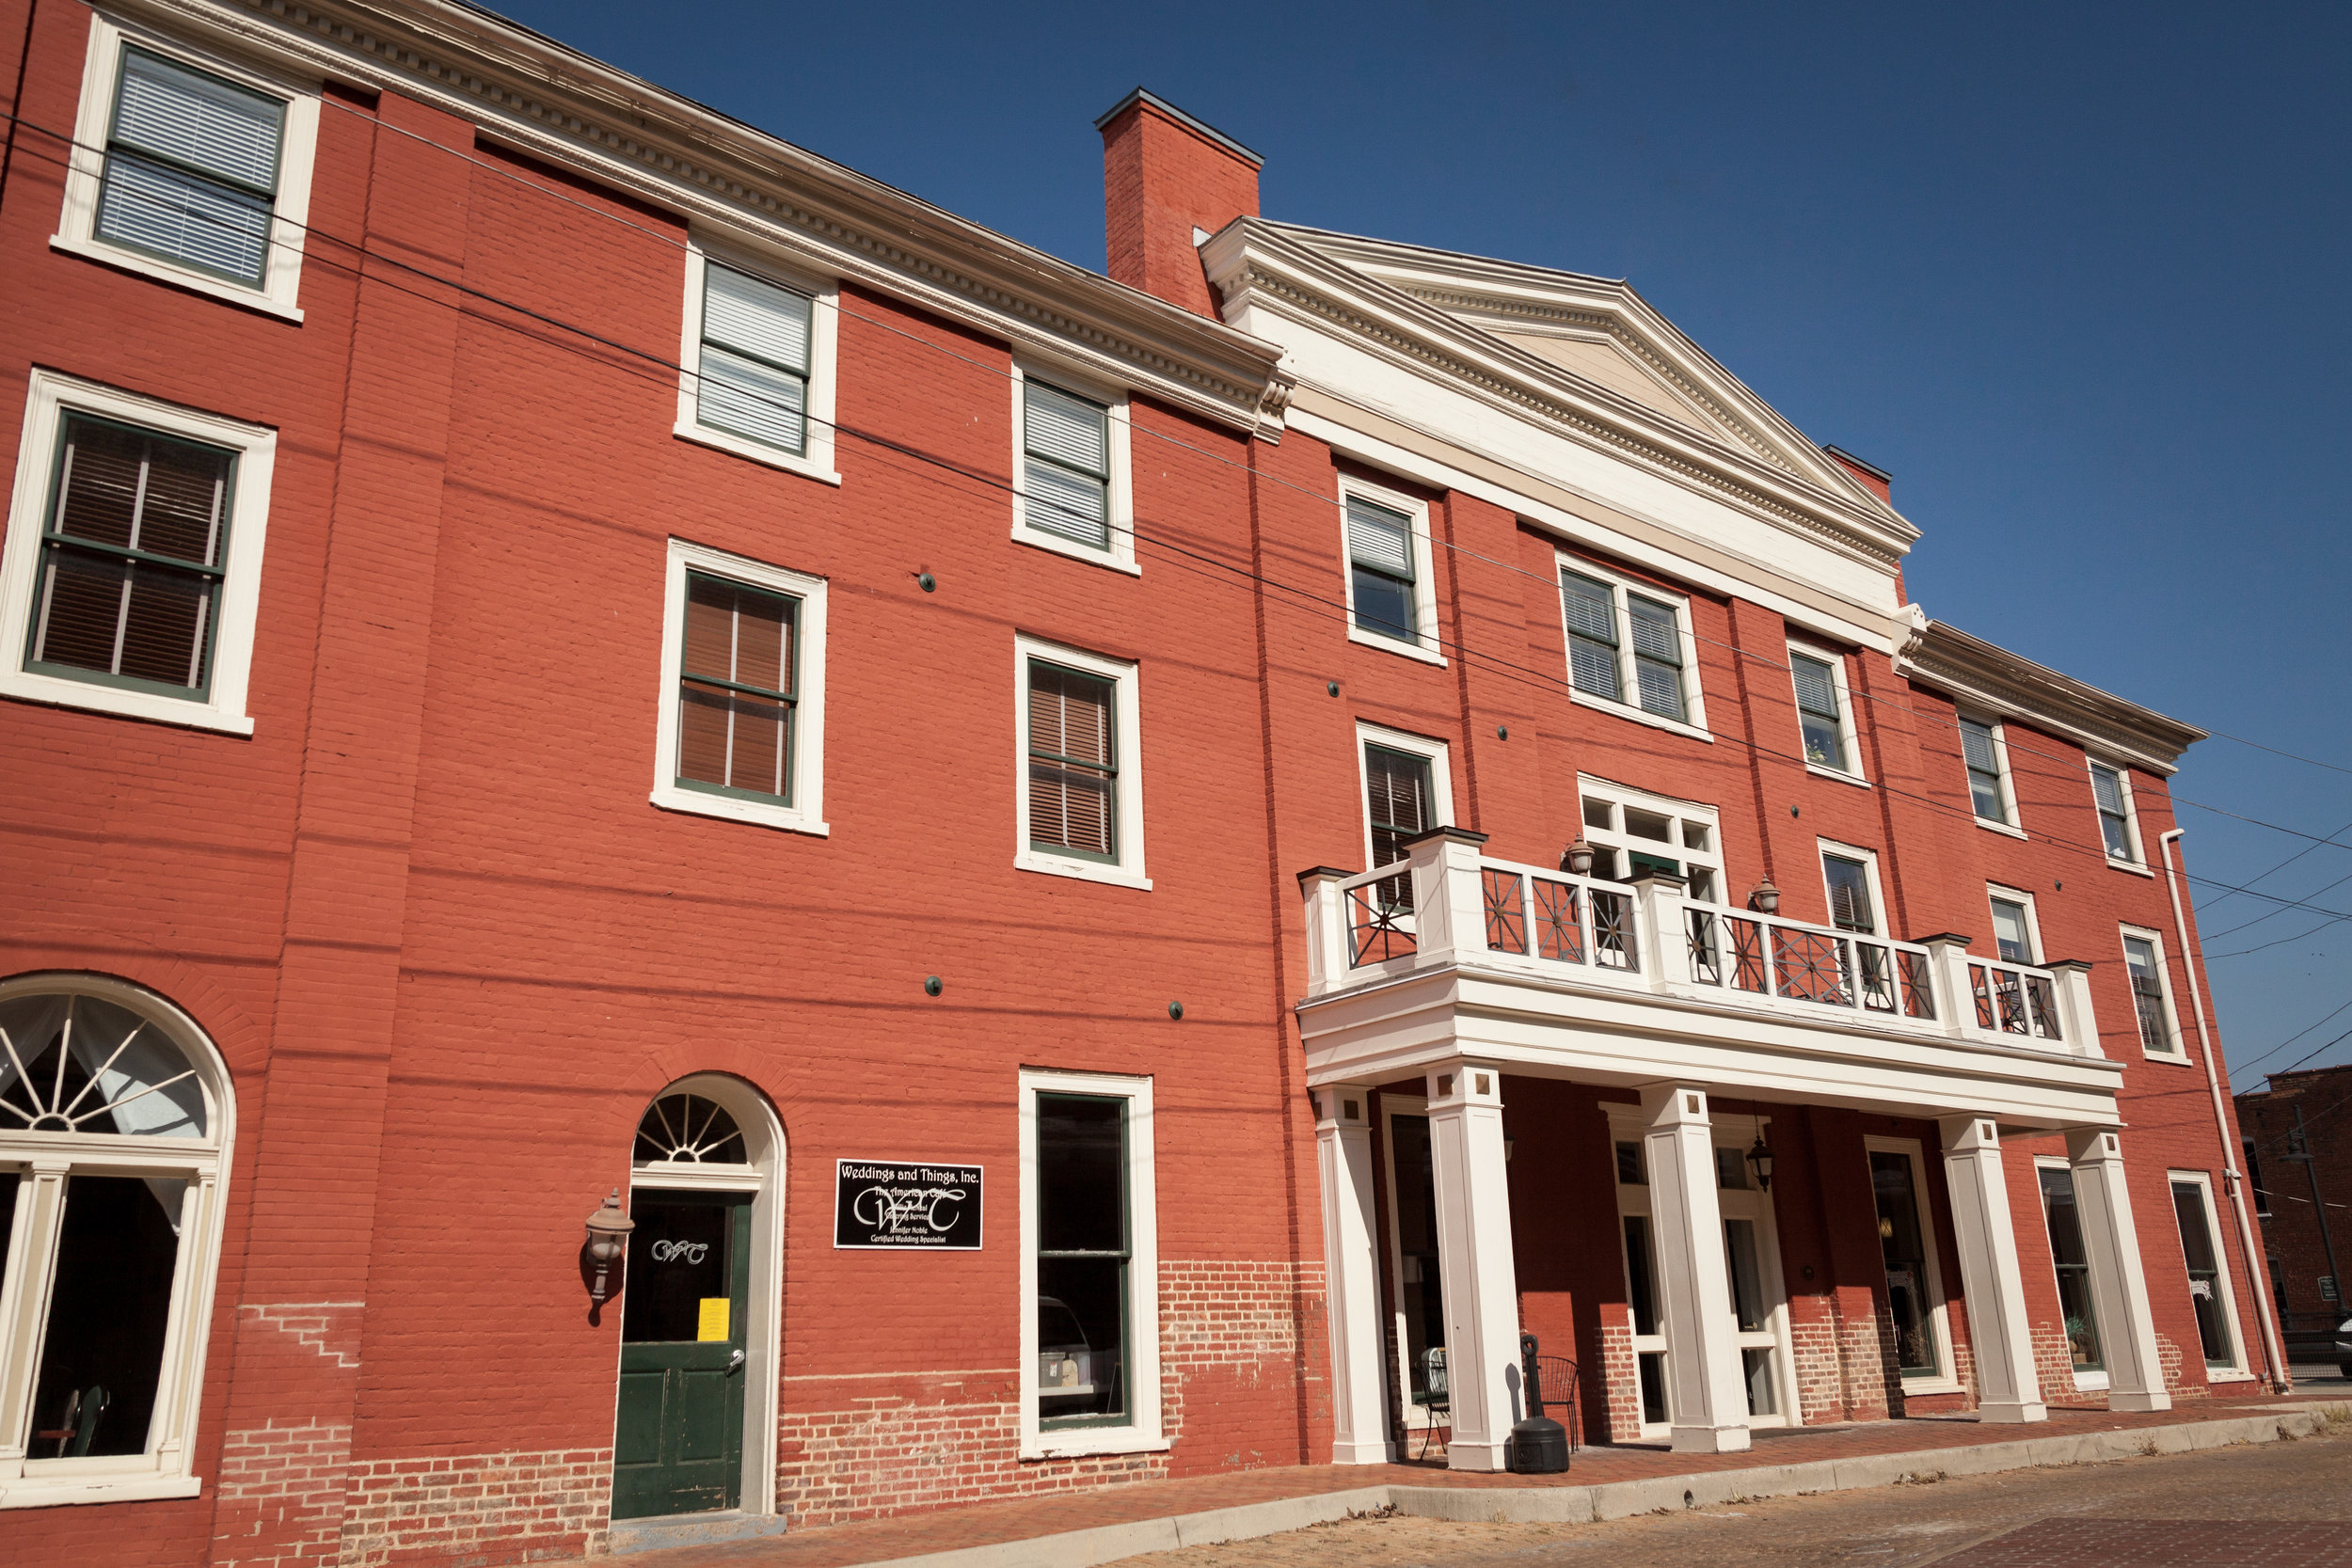 Wedding at the American Hotel in Staunton, Virginia. Shot of the exterior brick and blue sky